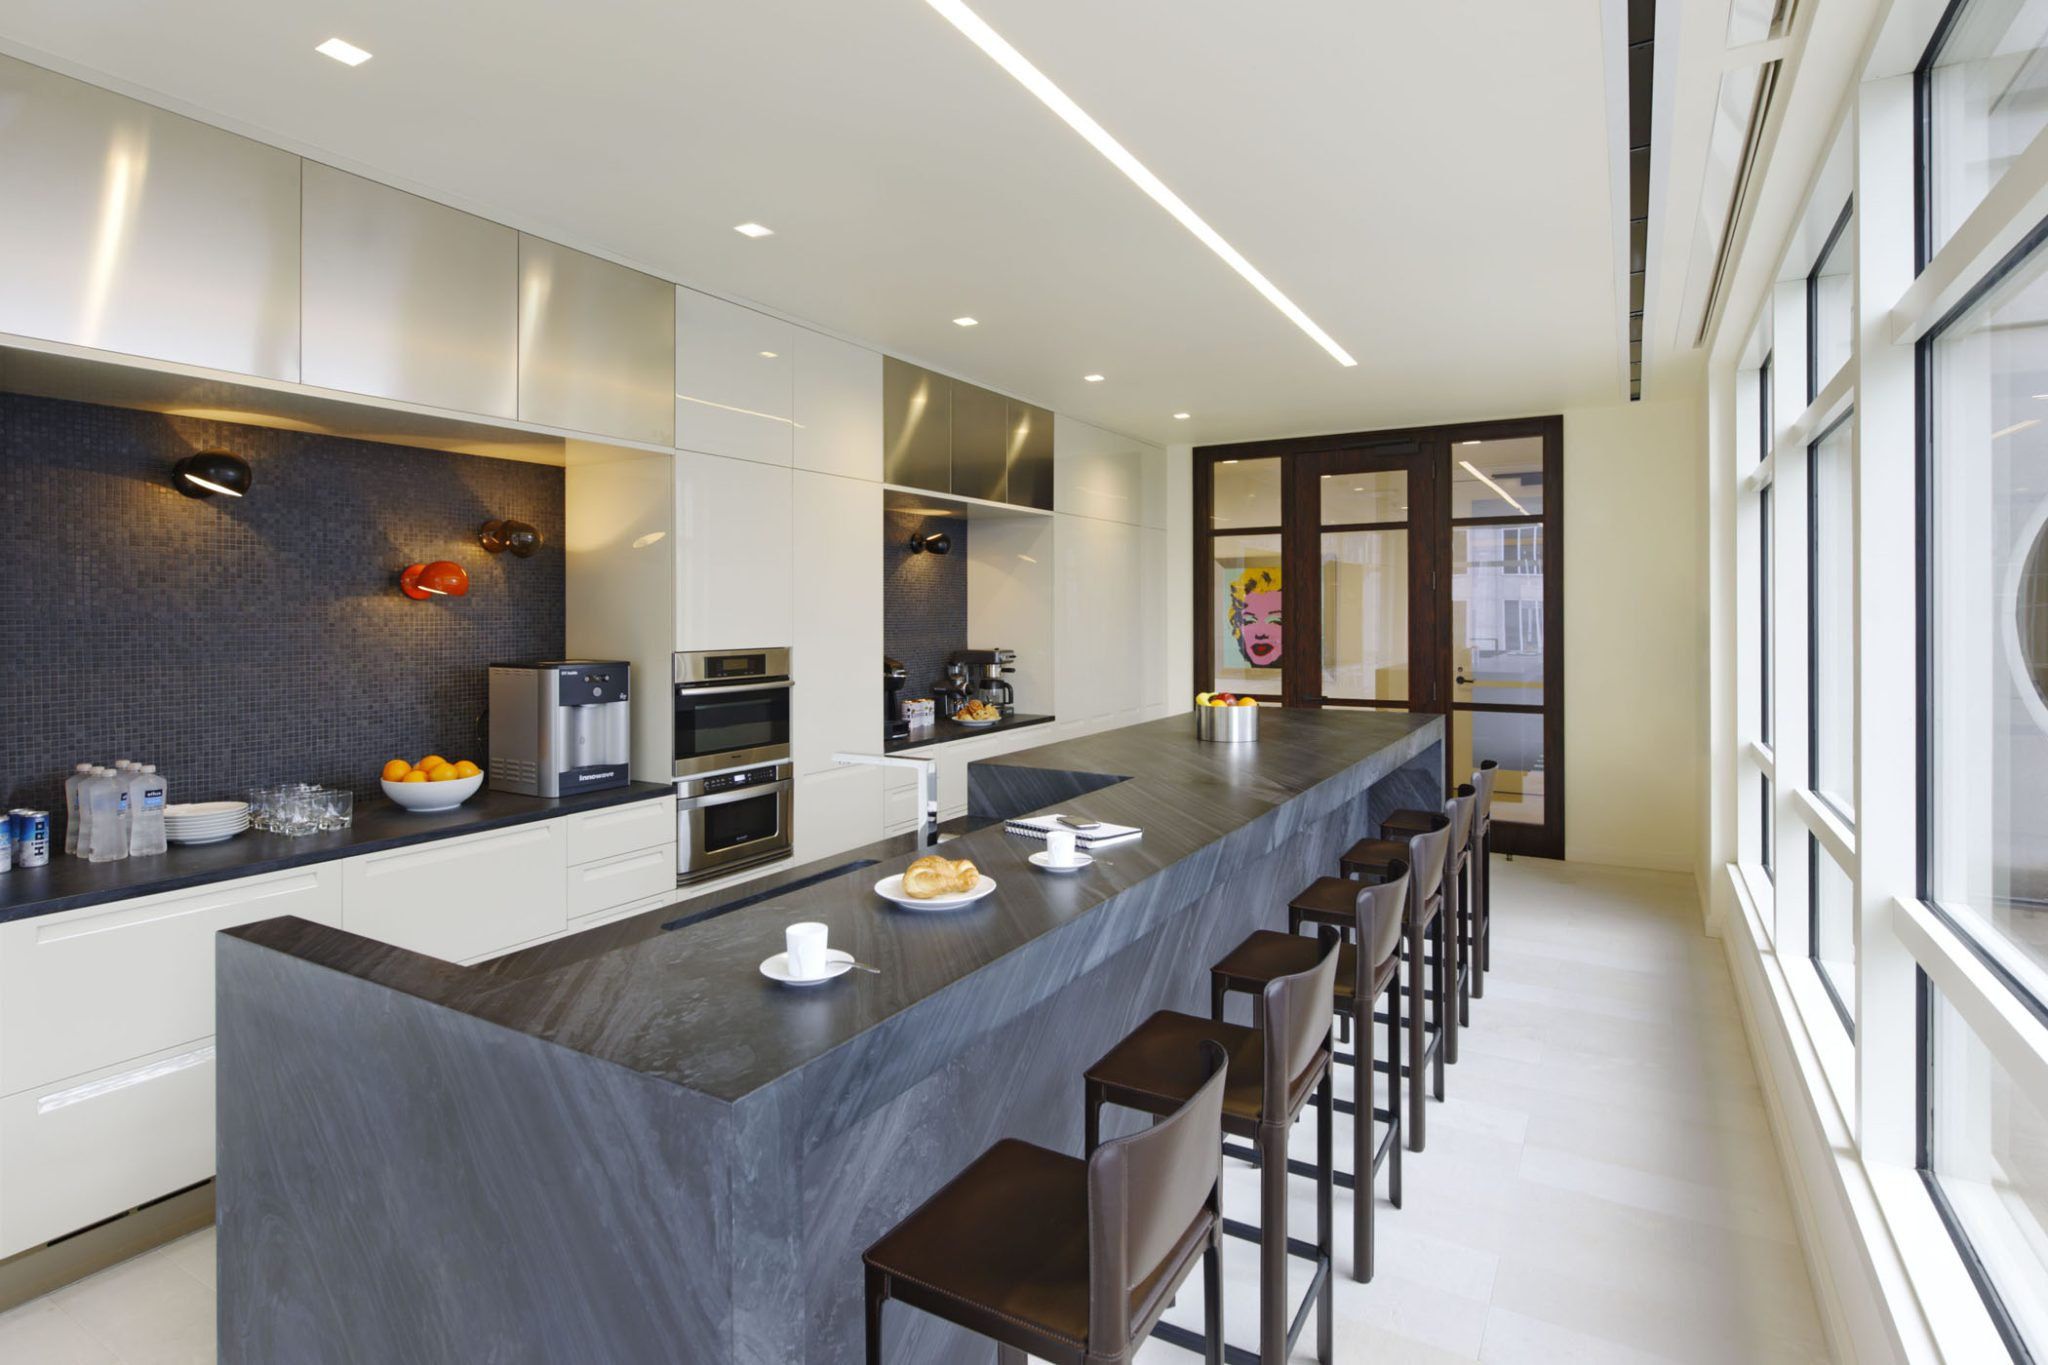 Kitchen space in investment management firm by Planeta Design Group